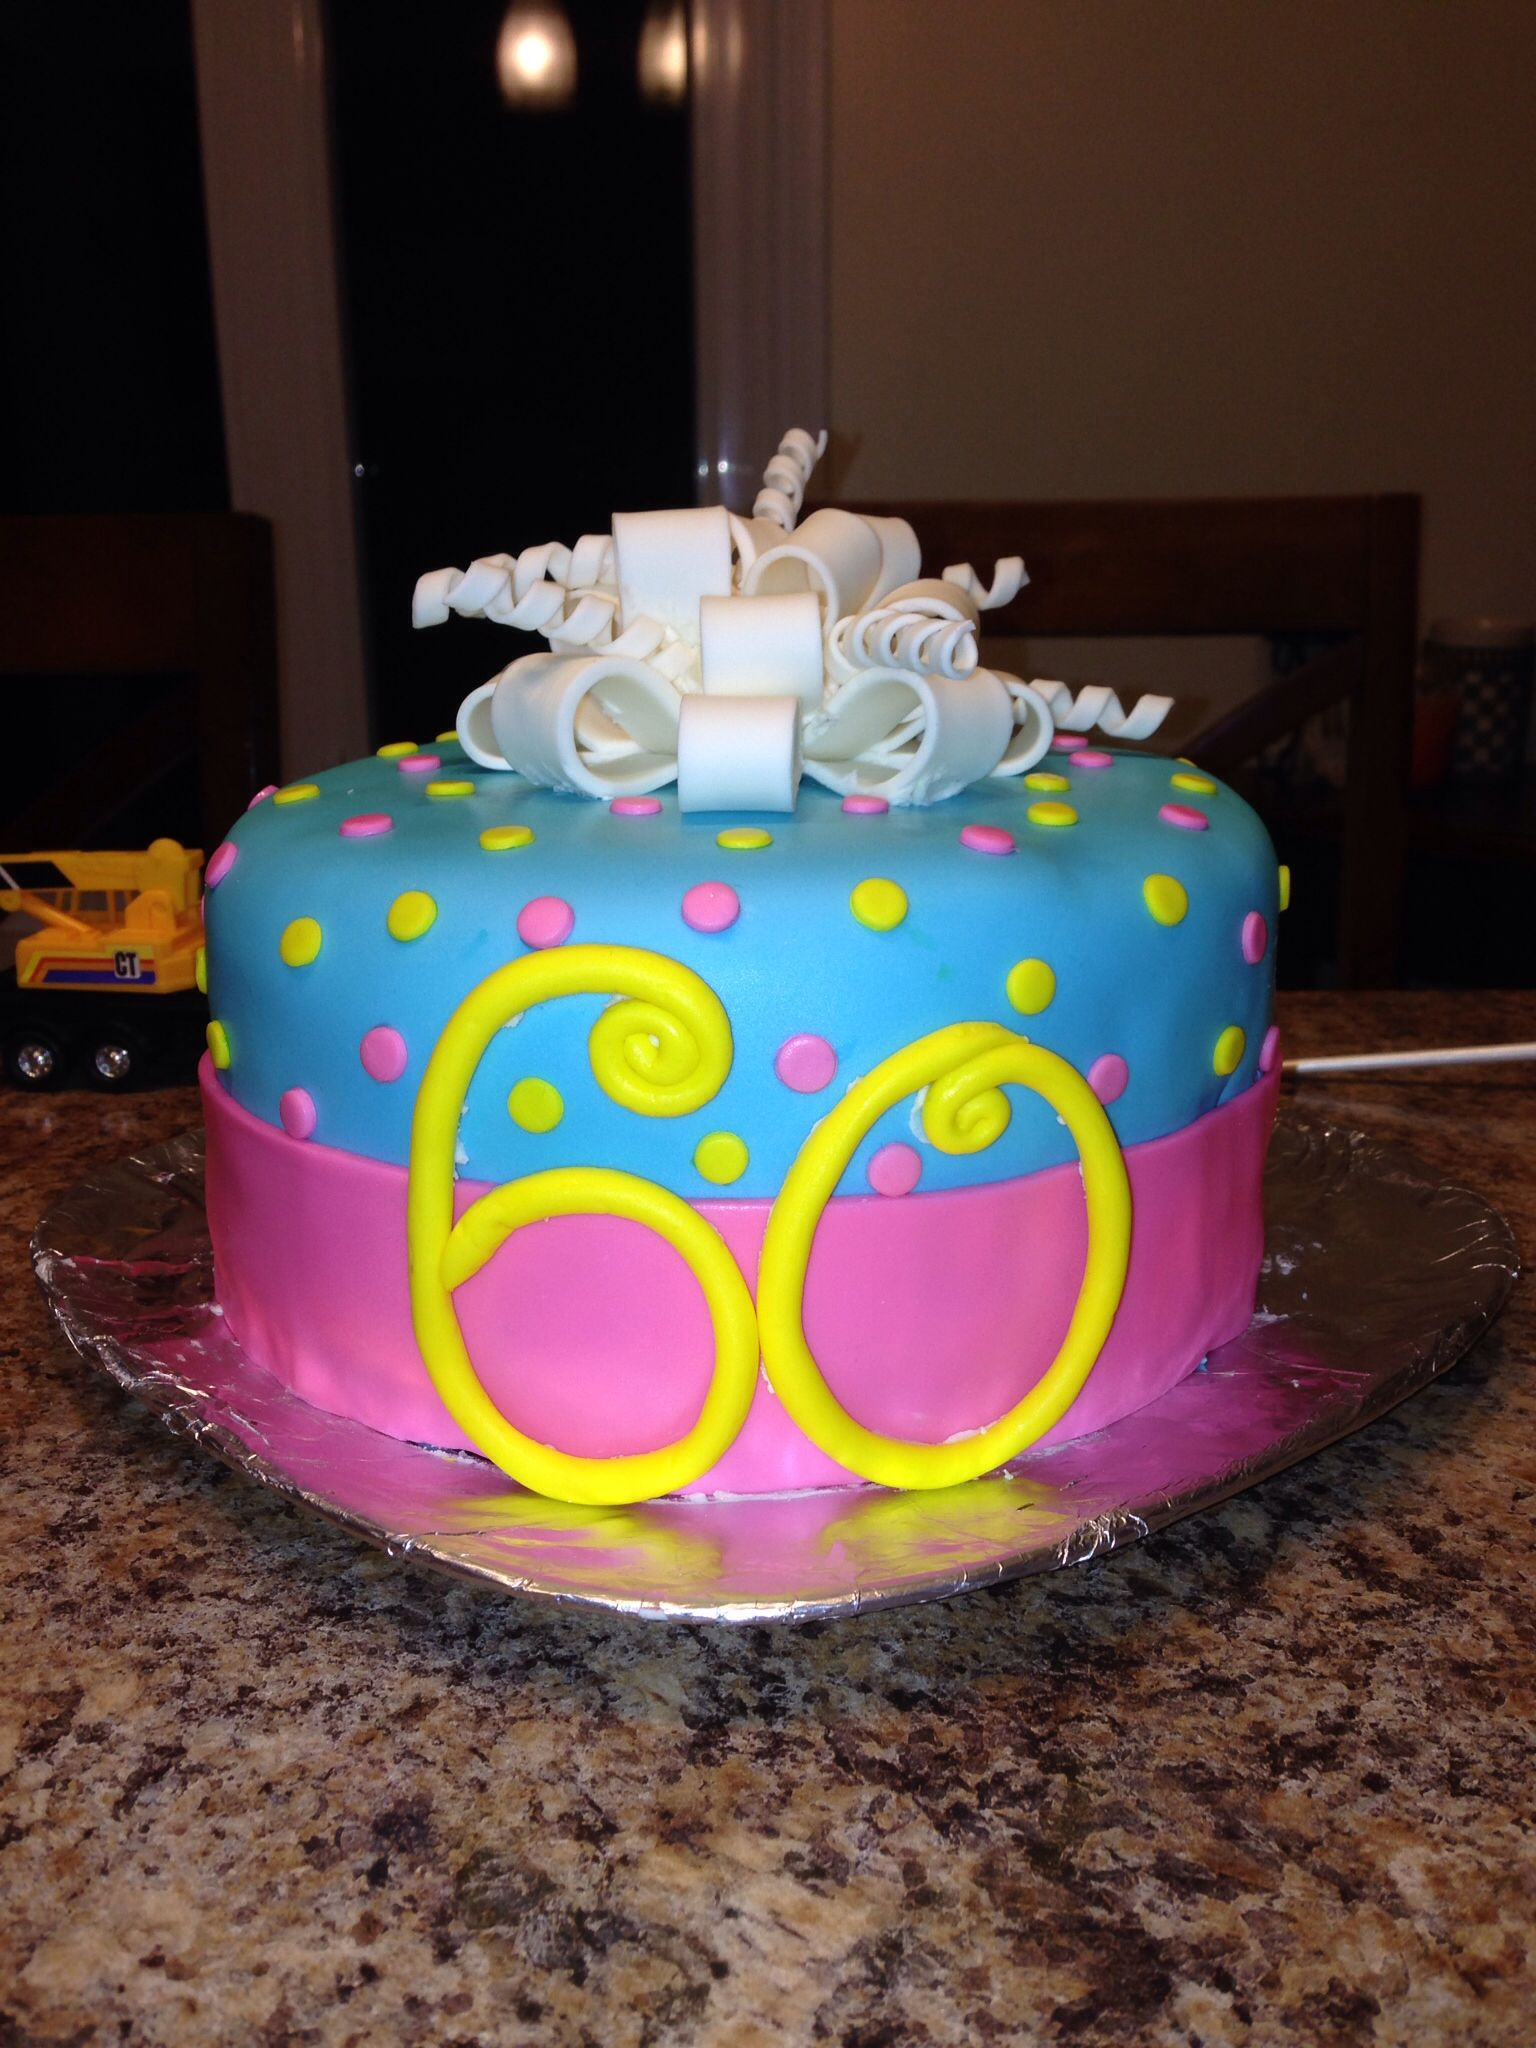 60th Birthday Cake Decorating Ideas 9763 Fondant Cake 60th